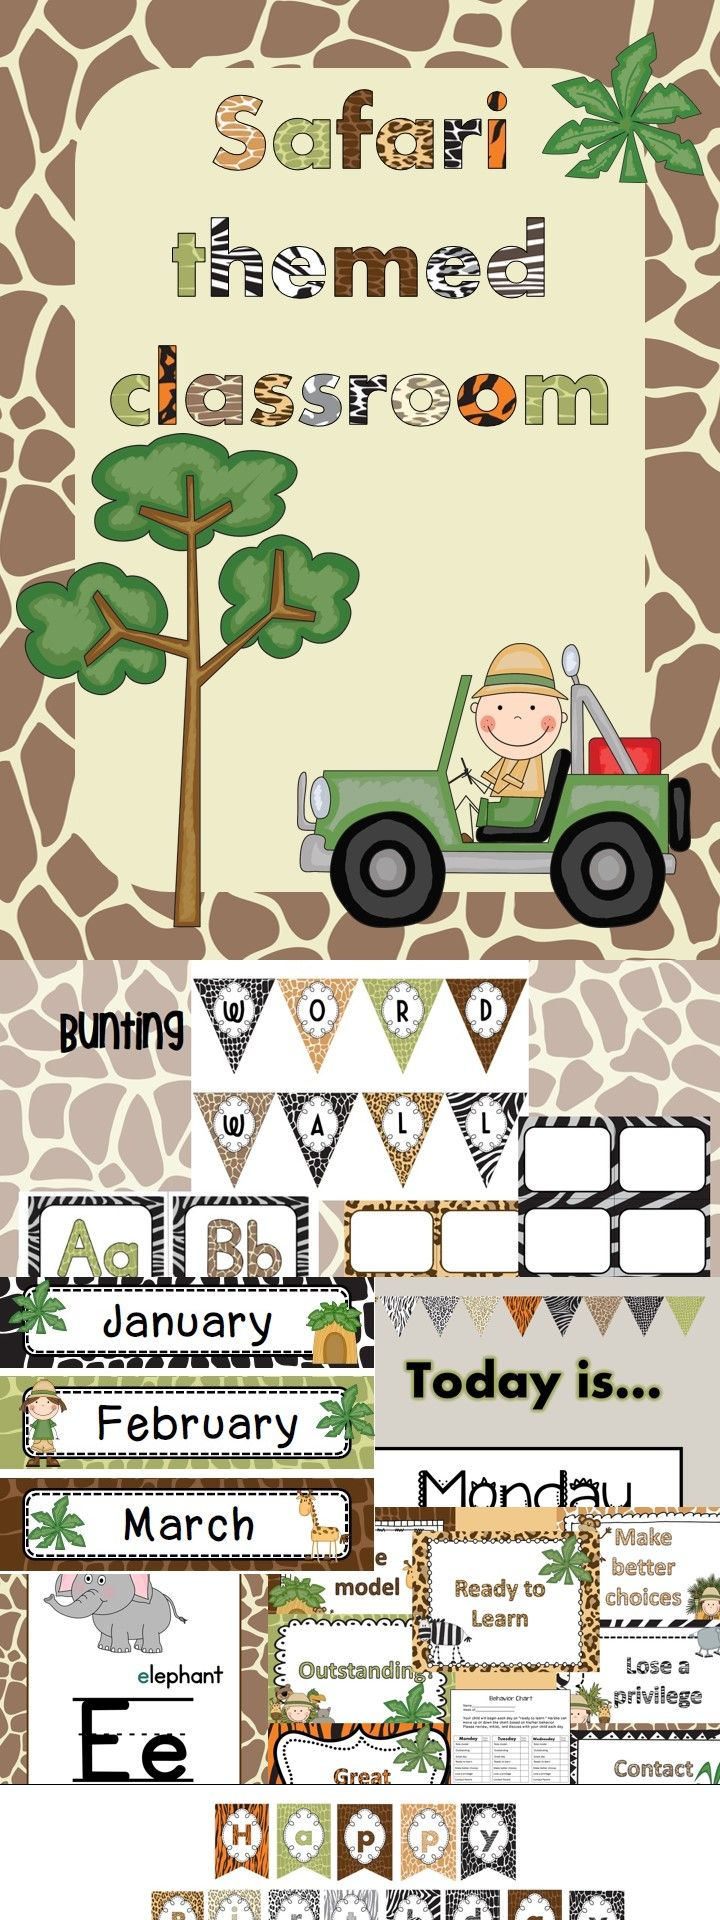 Print, laminate, and cut to decorate your classroom with these cute animal print patterns. This product contains some files that can be edited. Simply insert a text box and type what you need.